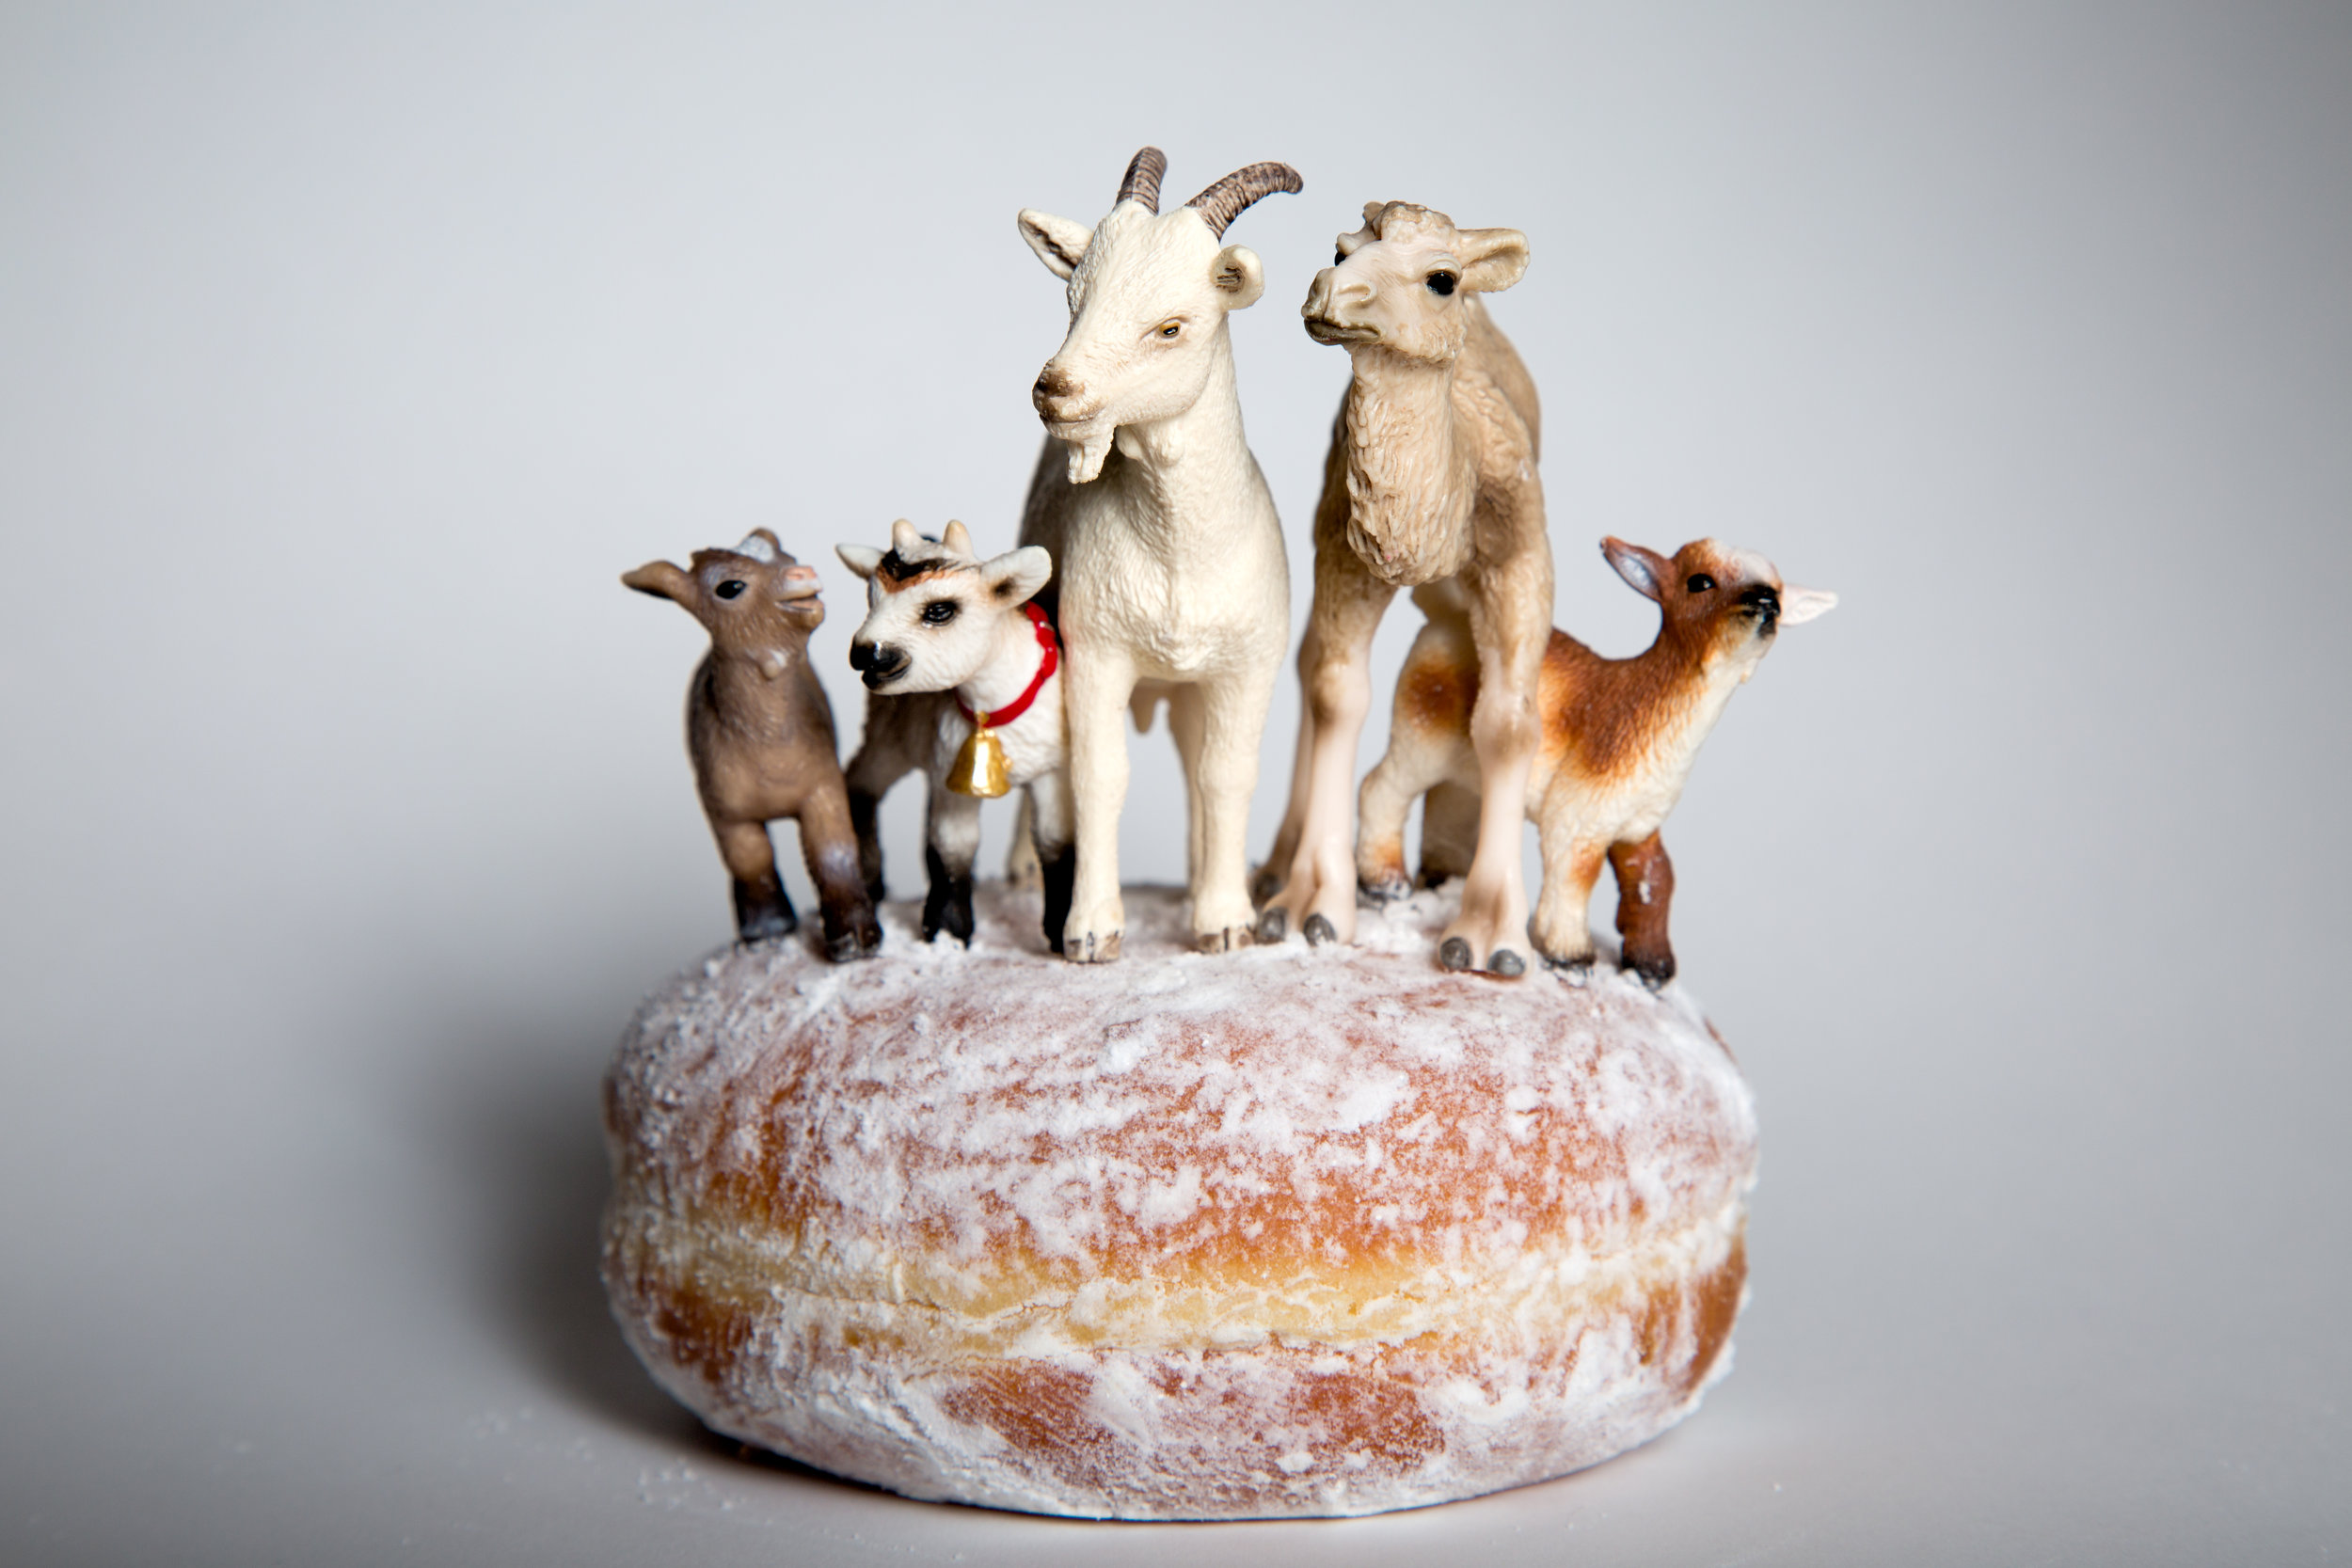 5 Goats and a Donut